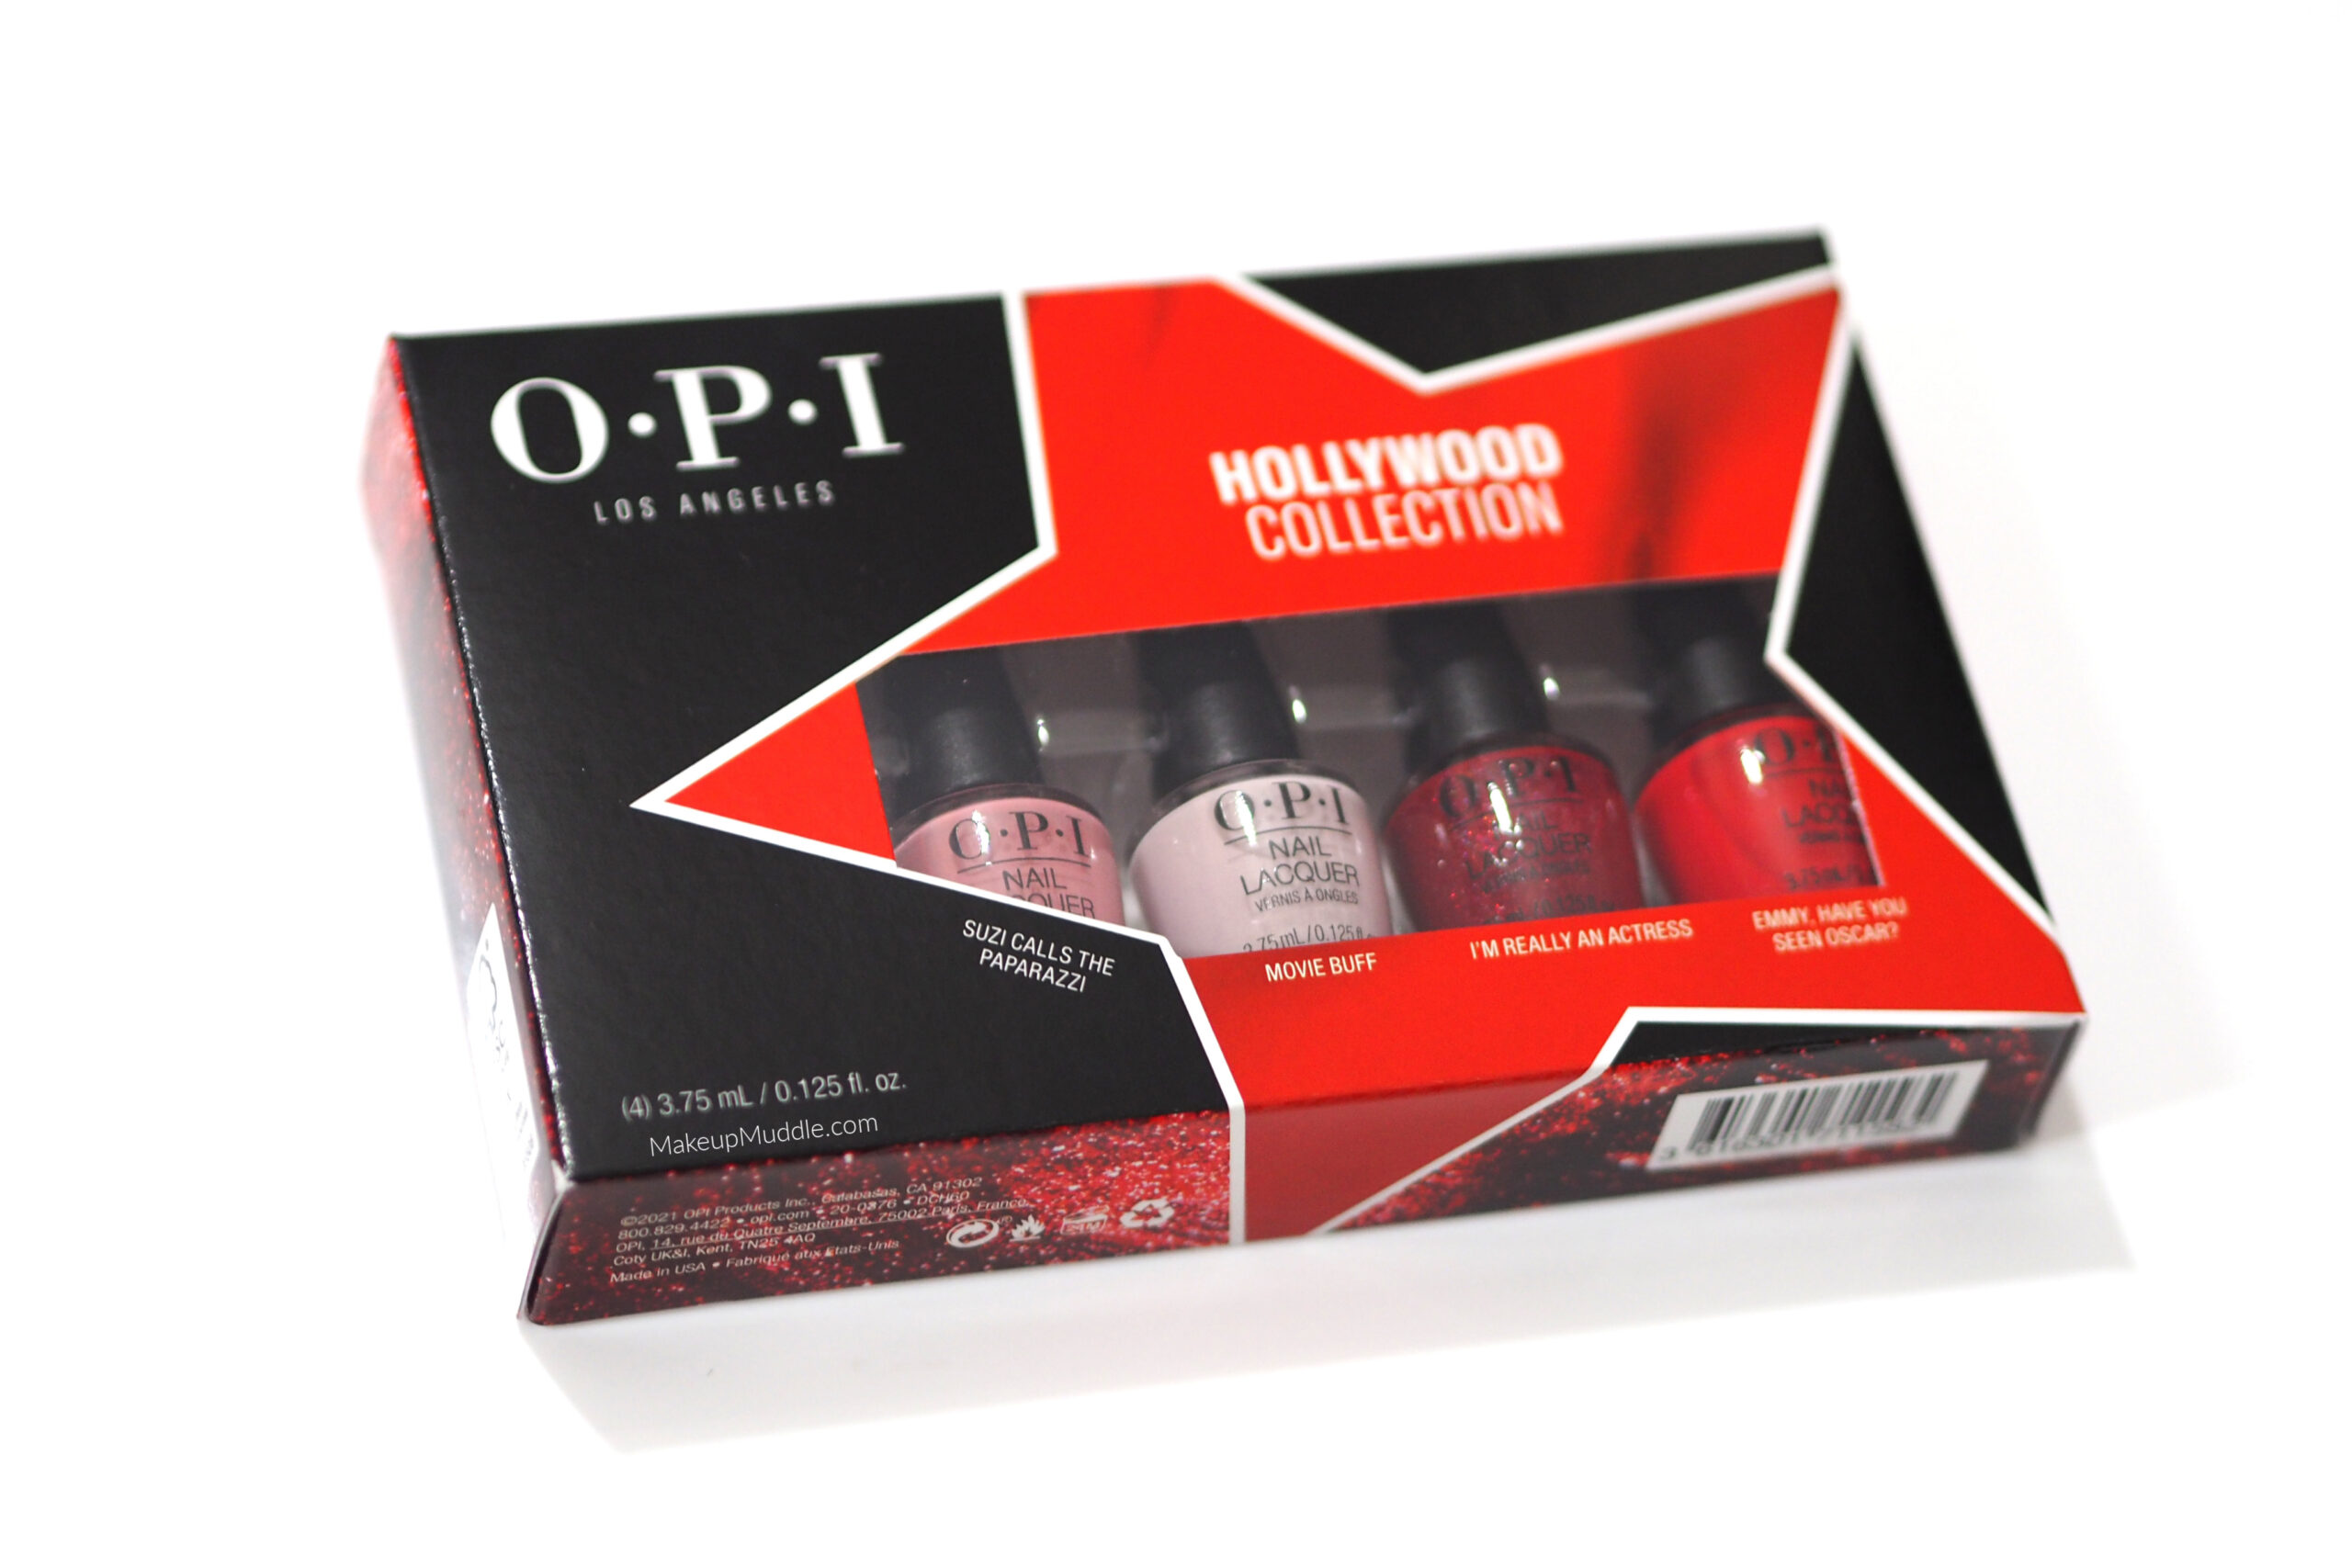 OPI Hollywood Collection Mini Polish Set Review / Swatches